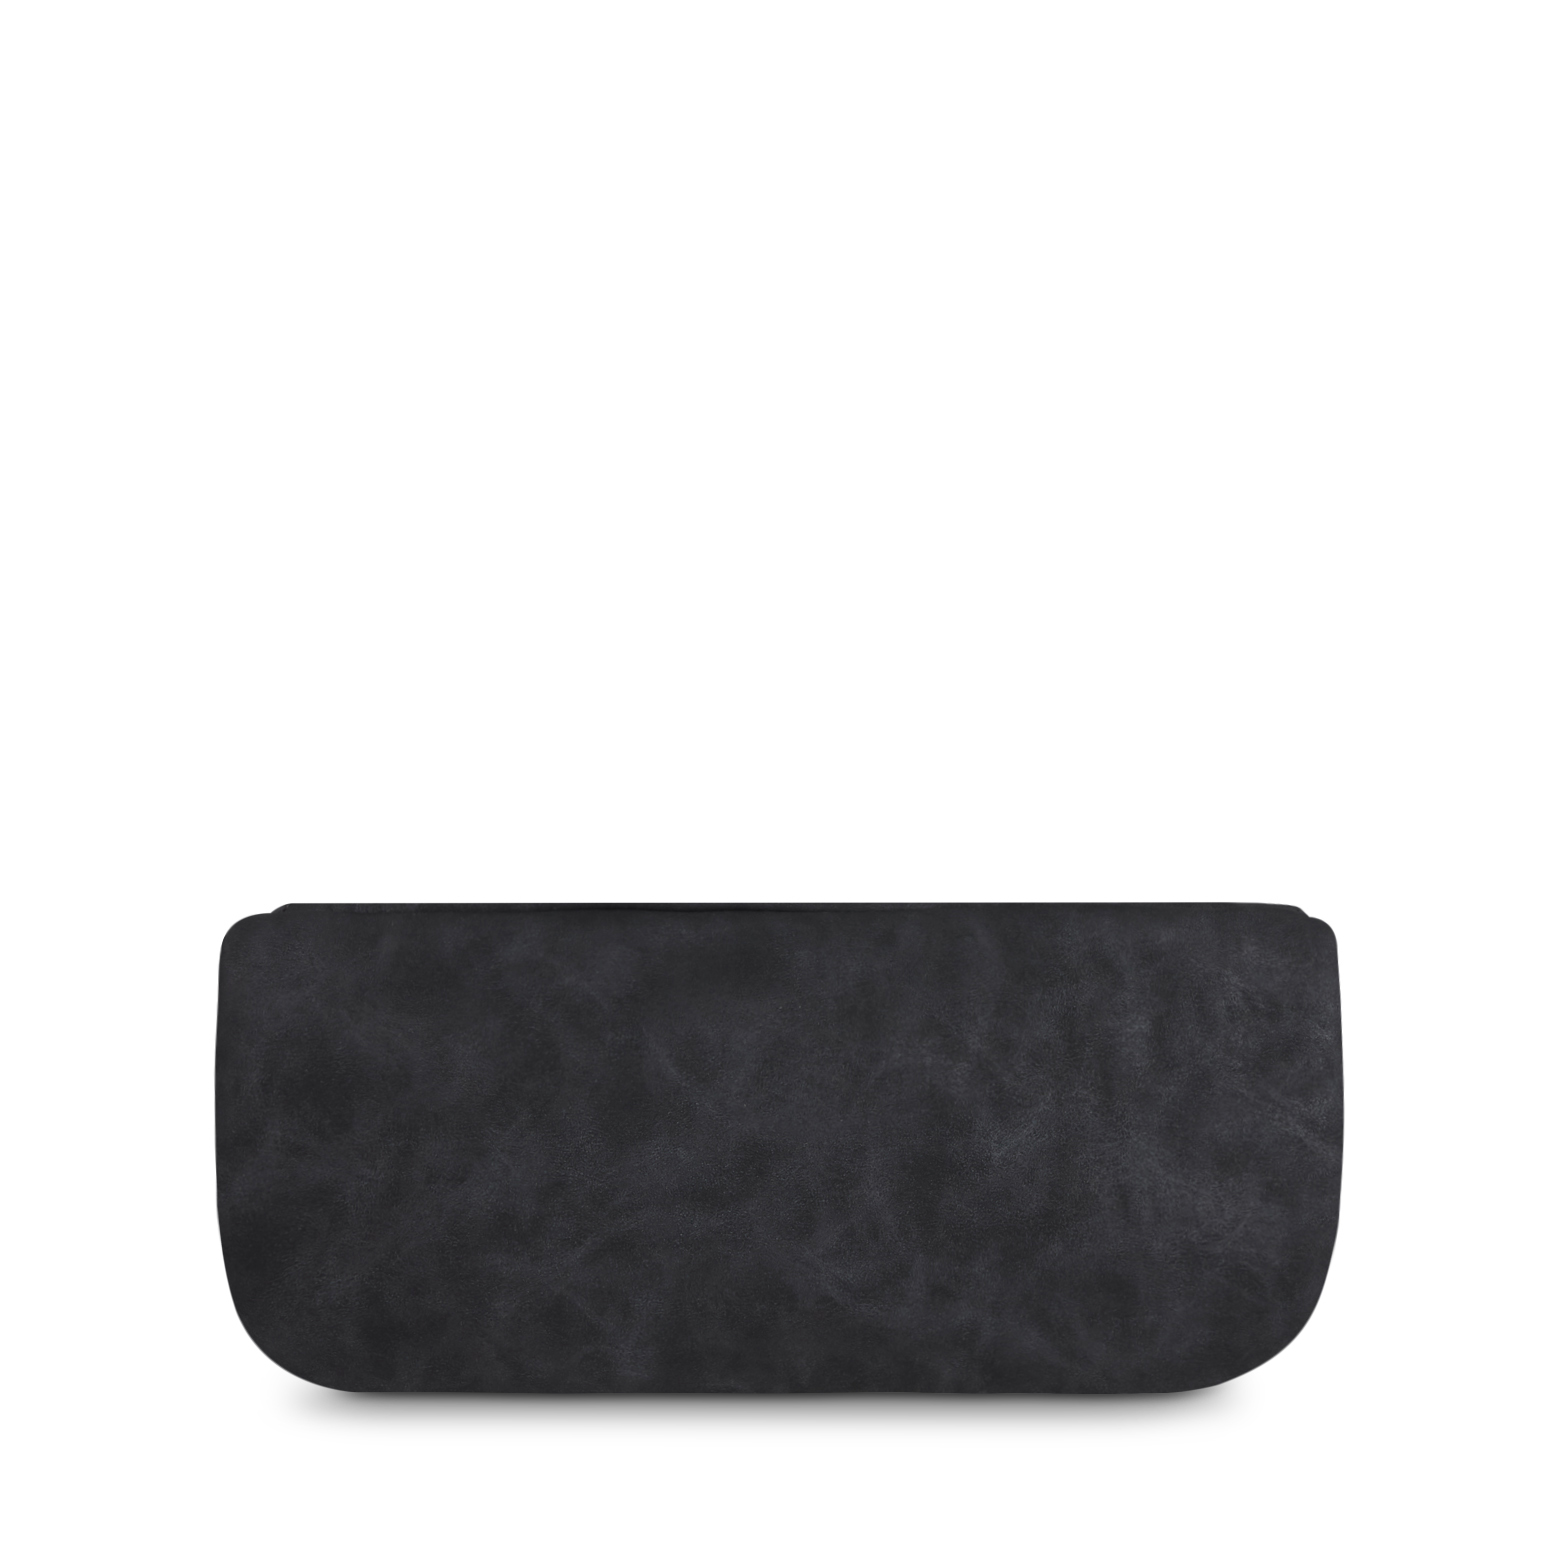 Fanny pack - black, BLACK ANTIC, hi-res